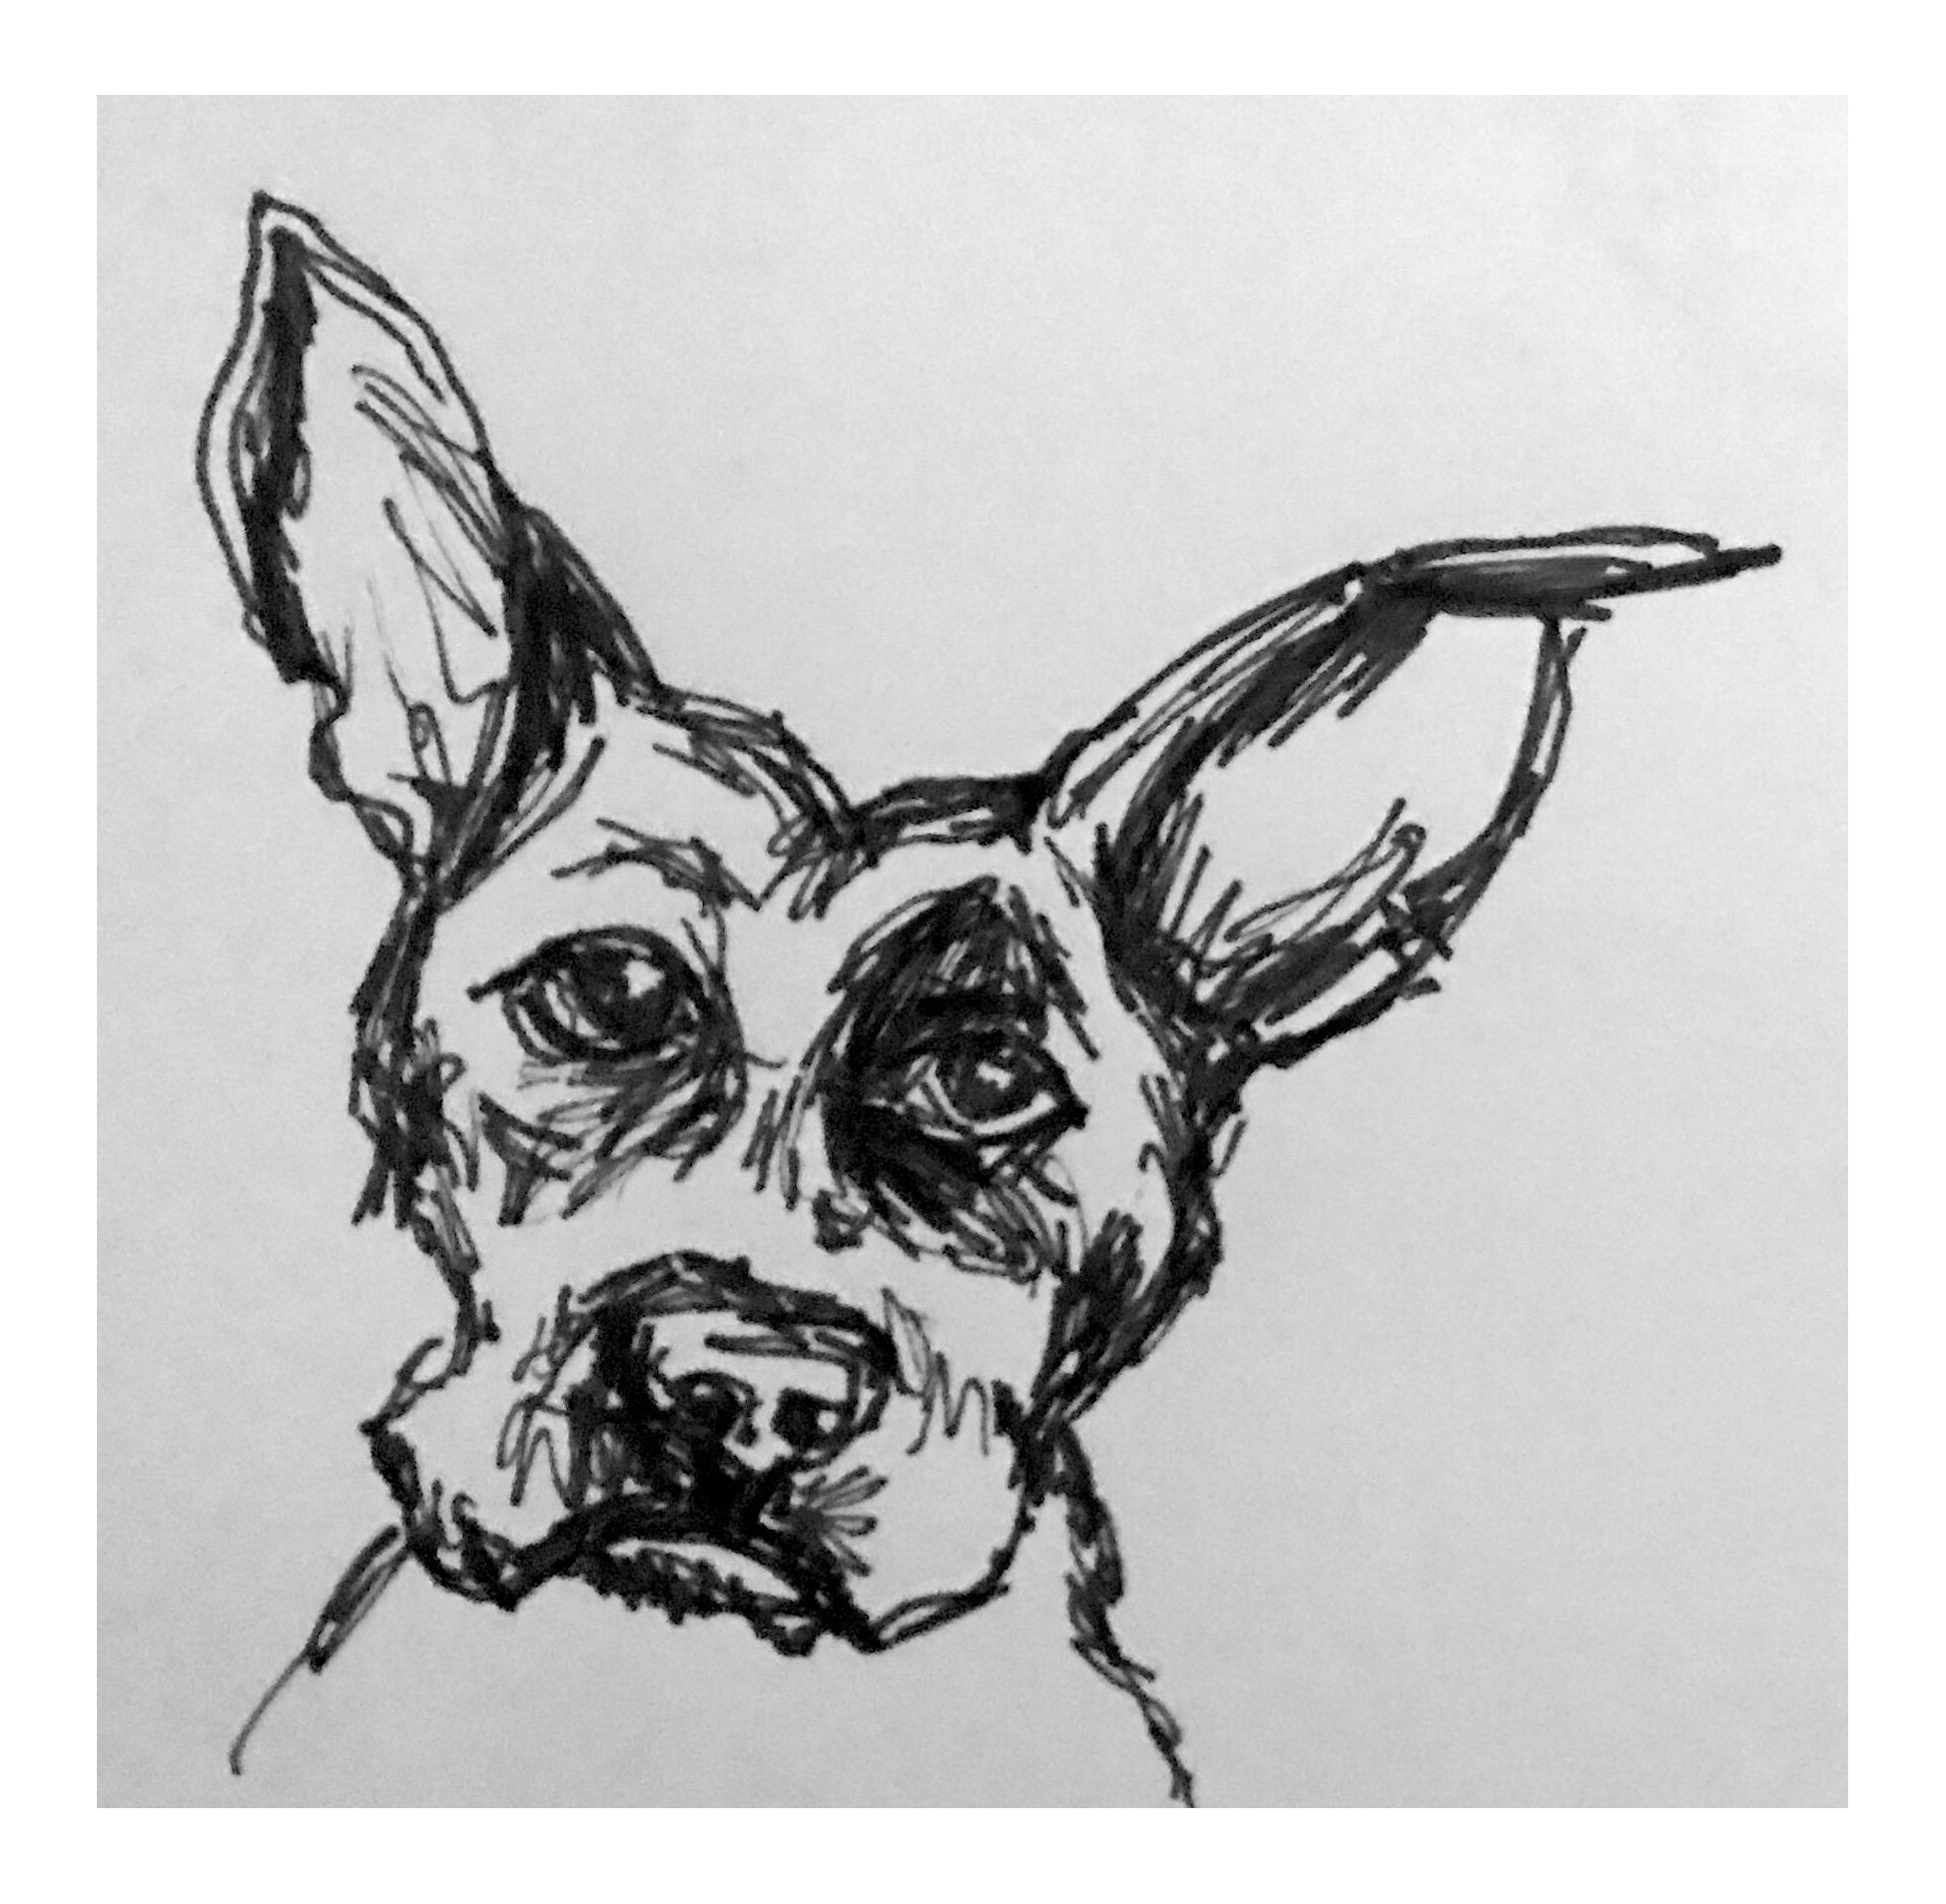 Terrier drawing ink. Curious max pen chairish